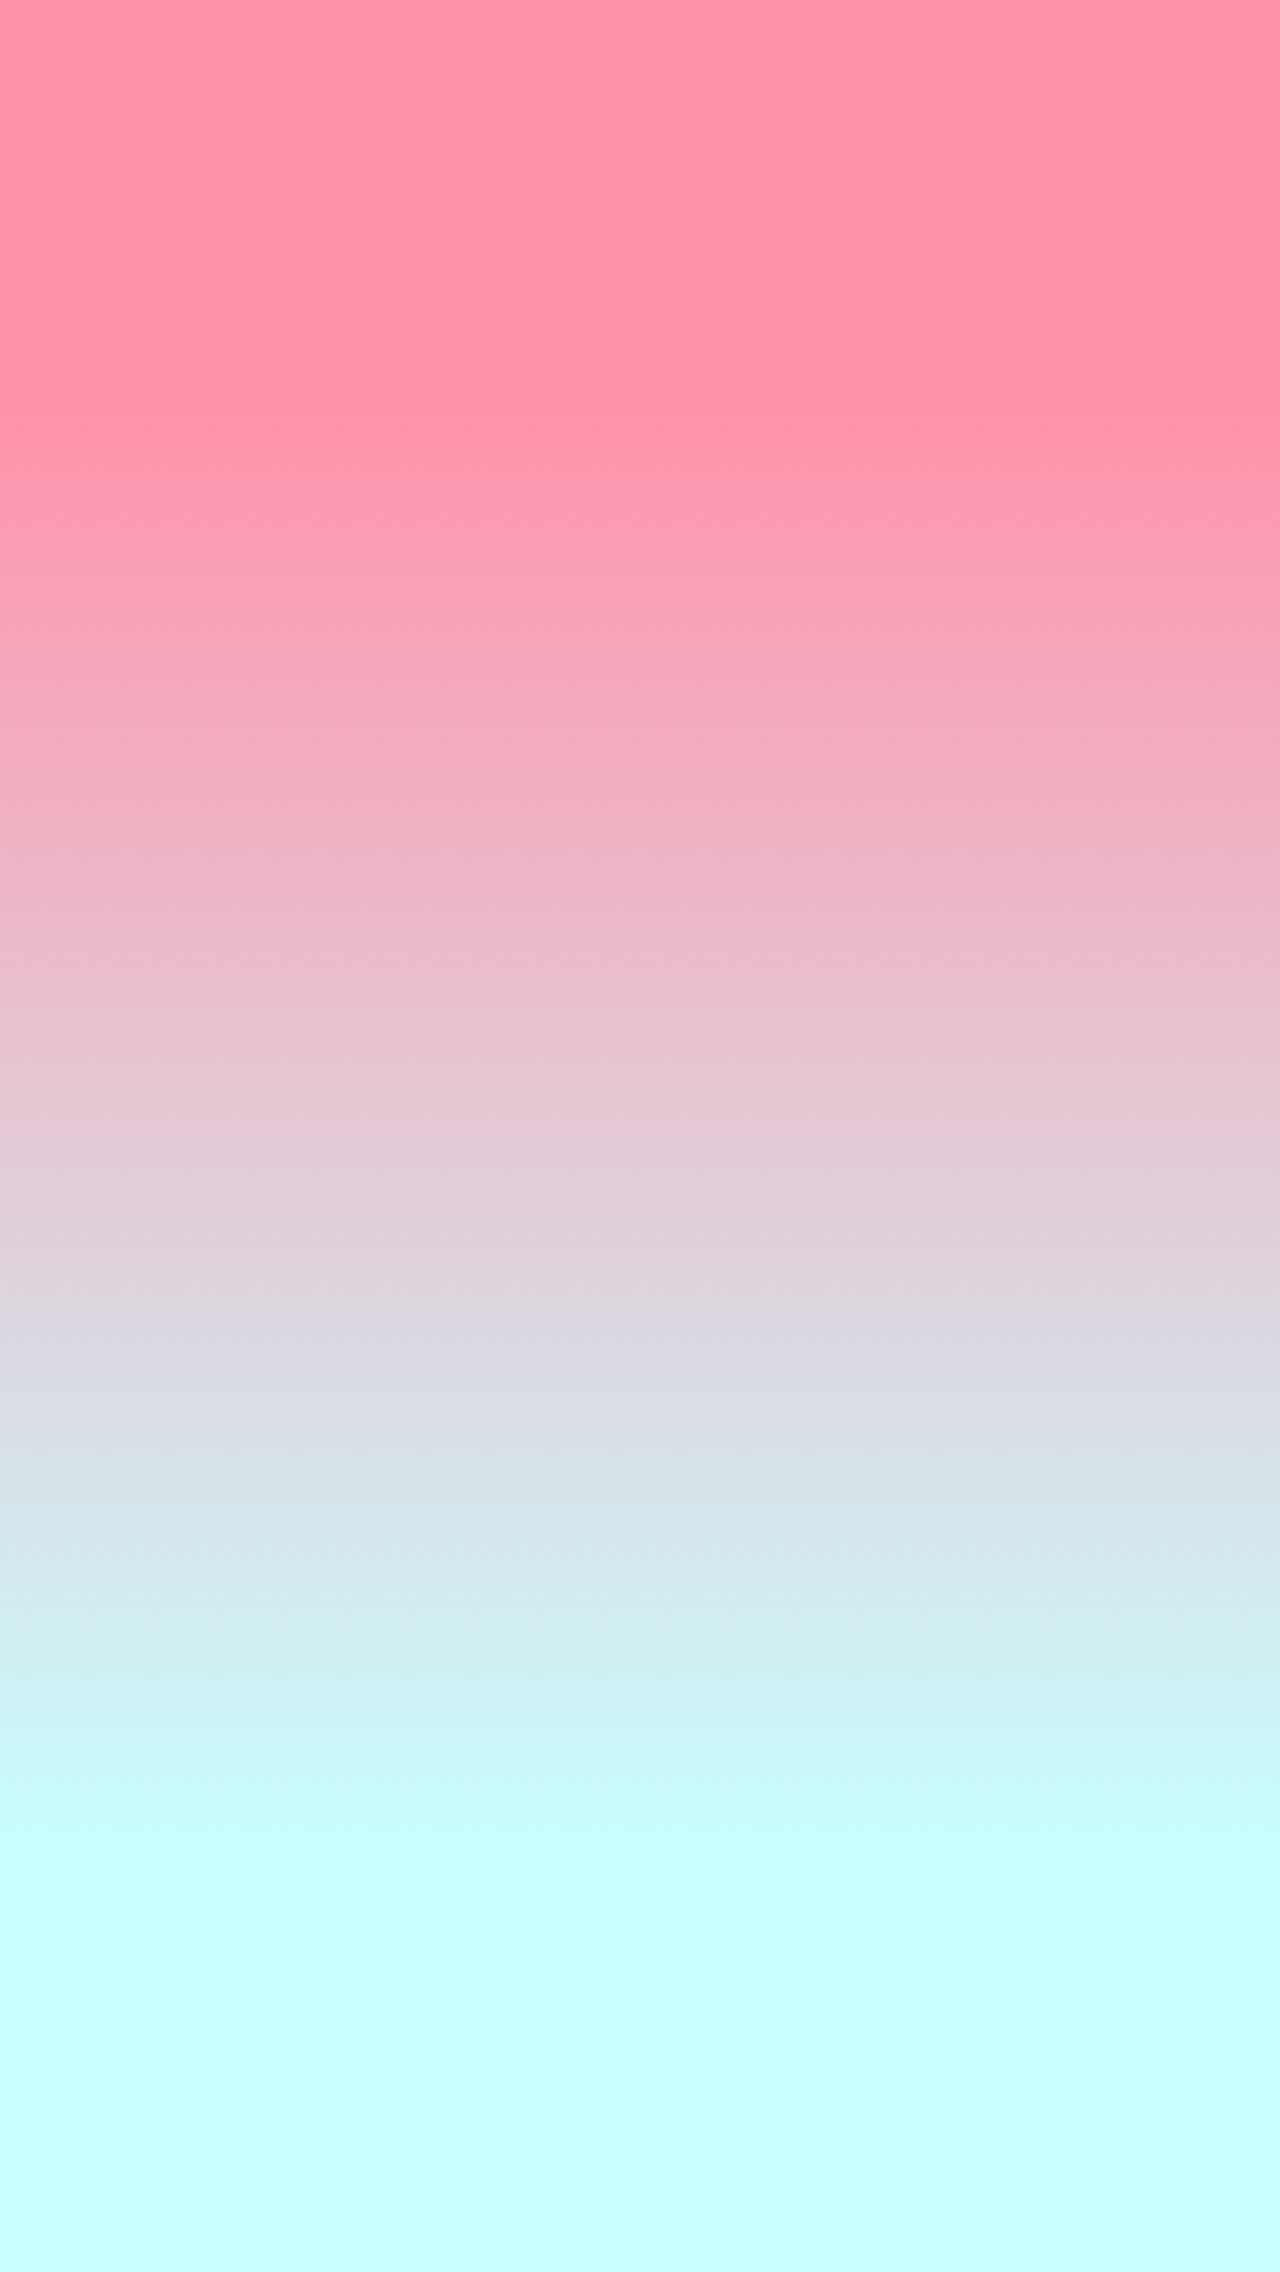 Pastel Pink and blue ombre iphone wallpaper phone background lock screen